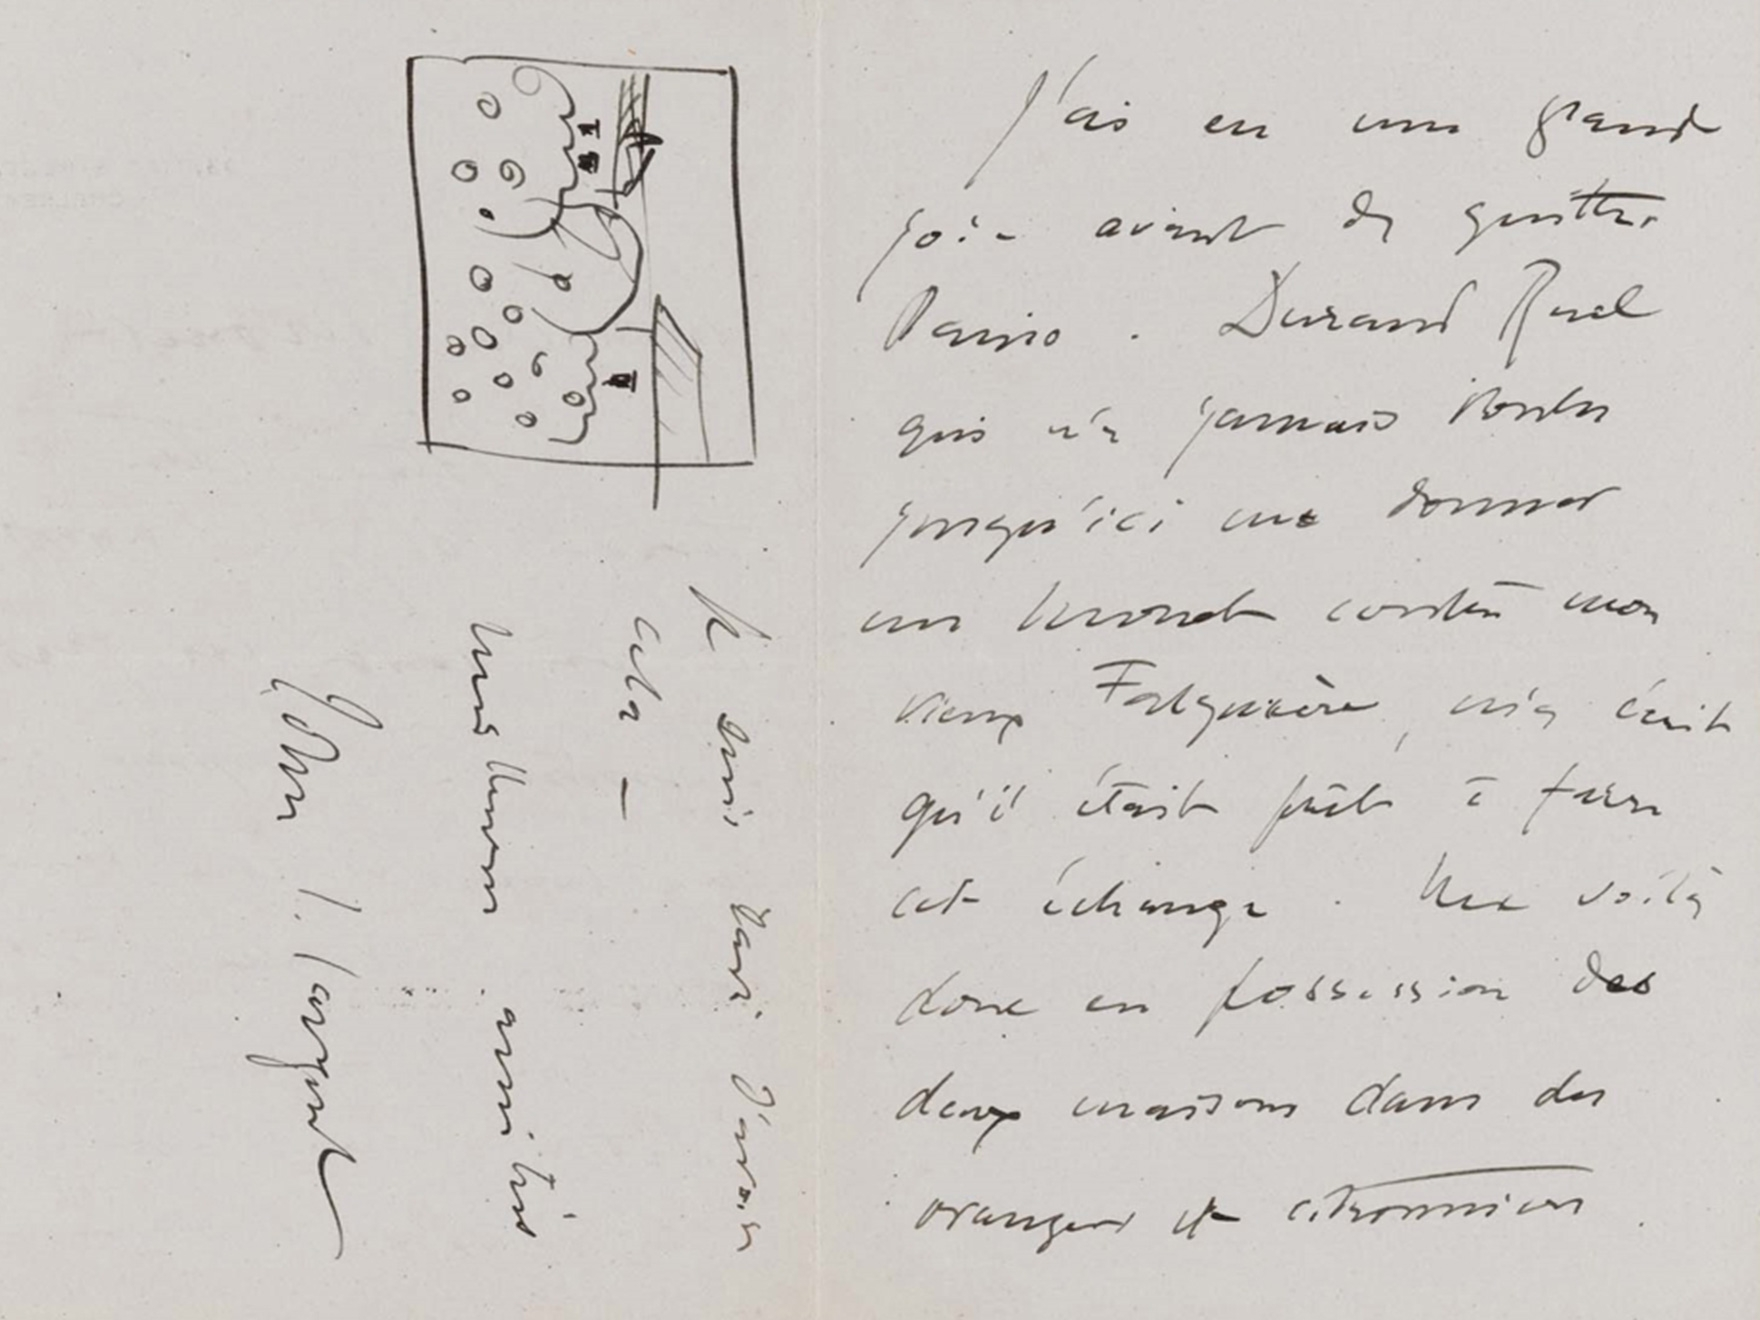 John Singer Sargent, John Singer Sargent to Claude Monet, September 1 [1891], from 33 Tite St., London, 1891